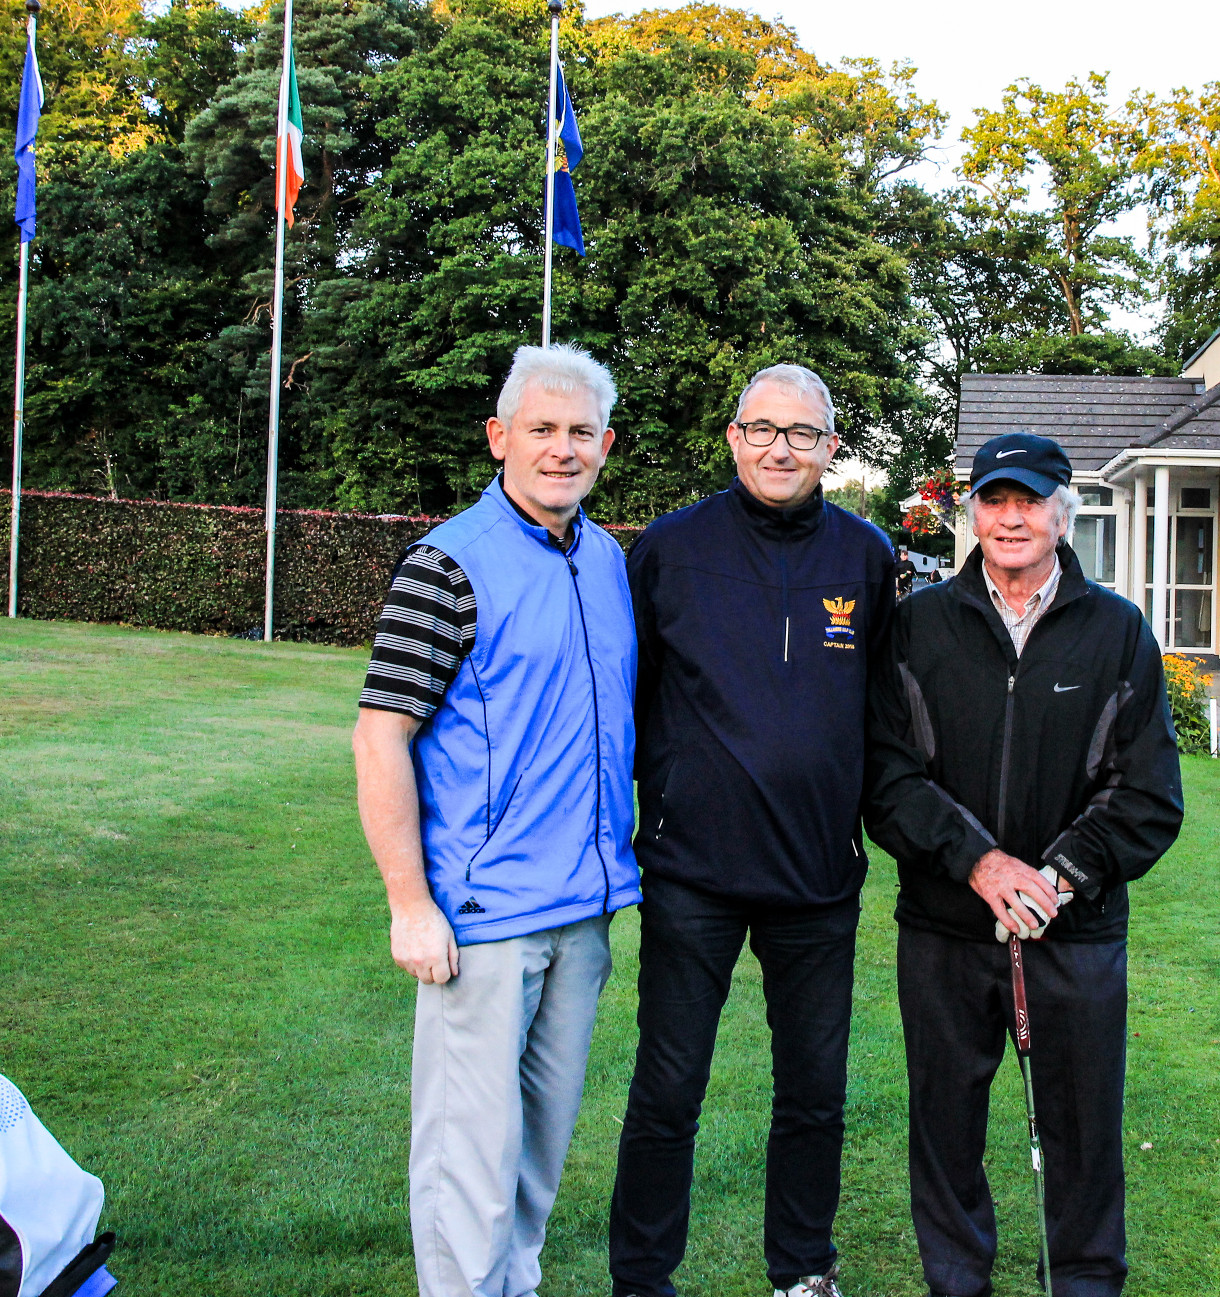 Roddy and Martin with Captain Brian before 3-hole play-off